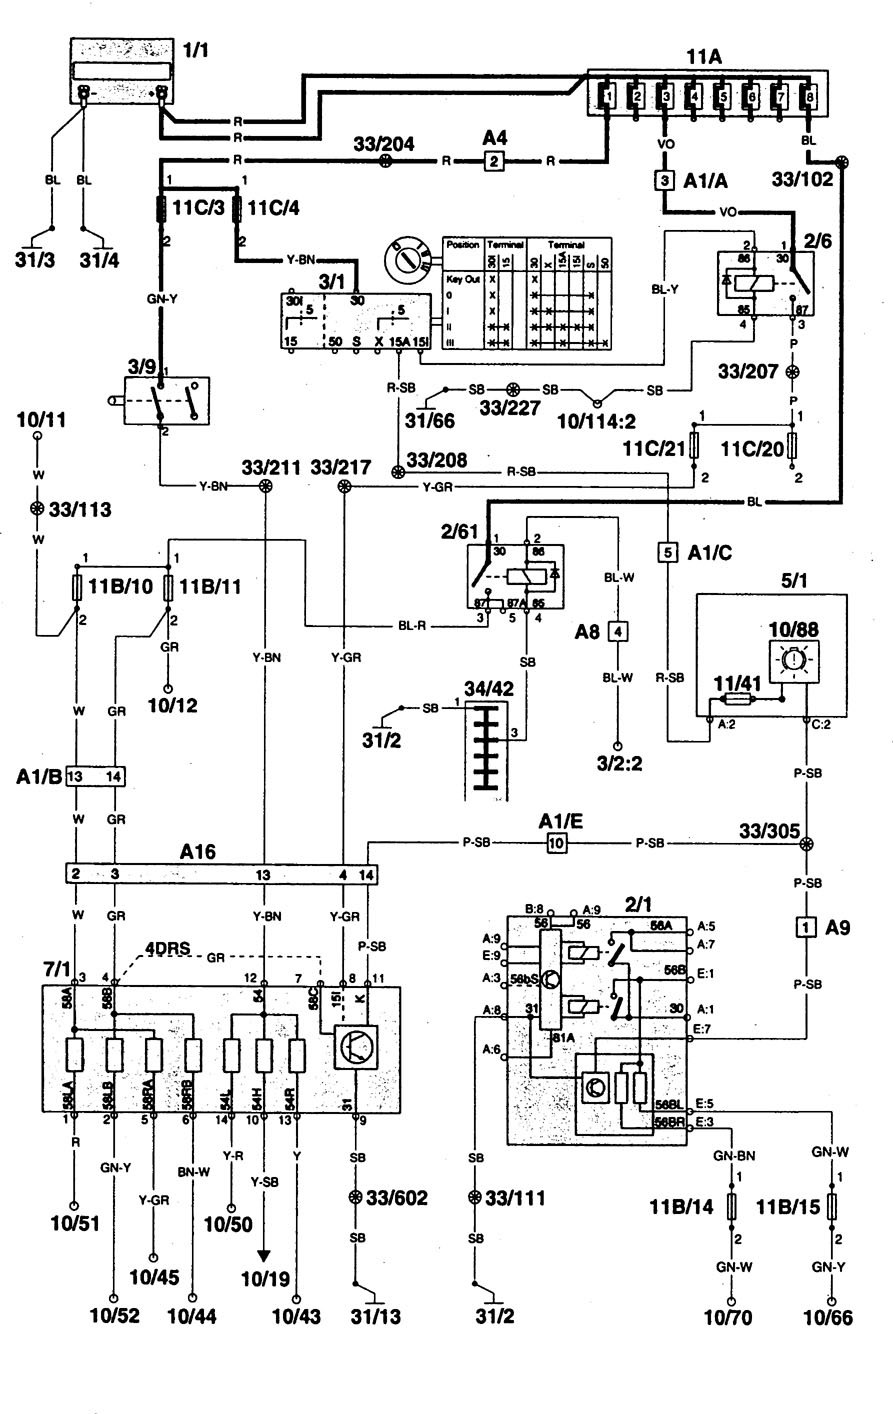 volvo 960 1995 wiring diagrams lamp out warning carknowledge rh  carknowledge info Volvo EGR Valve Diagram 1998 Volvo S70 Engine Diagram